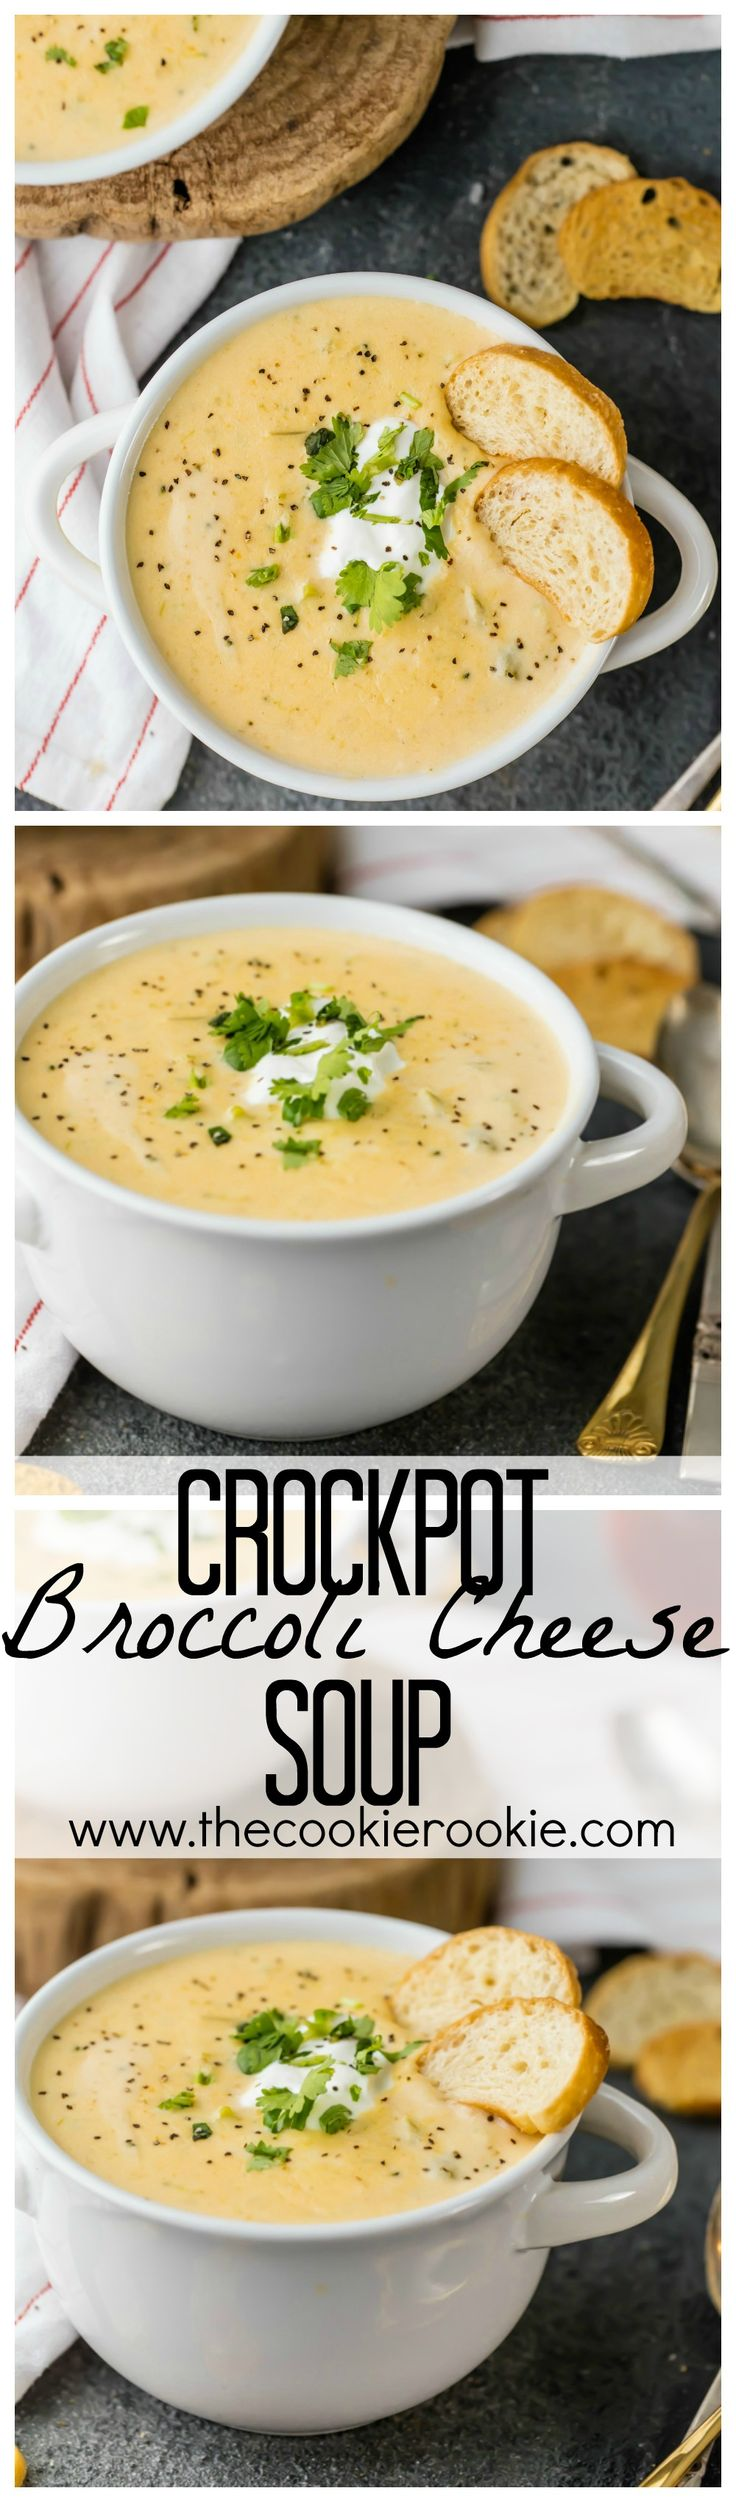 SUPER EASY Crockpot Broccoli Cheese Soup recipe! Dreams do come true! The perfect EASY comfort food for any occasion!! Love to make this in bulk for friends!